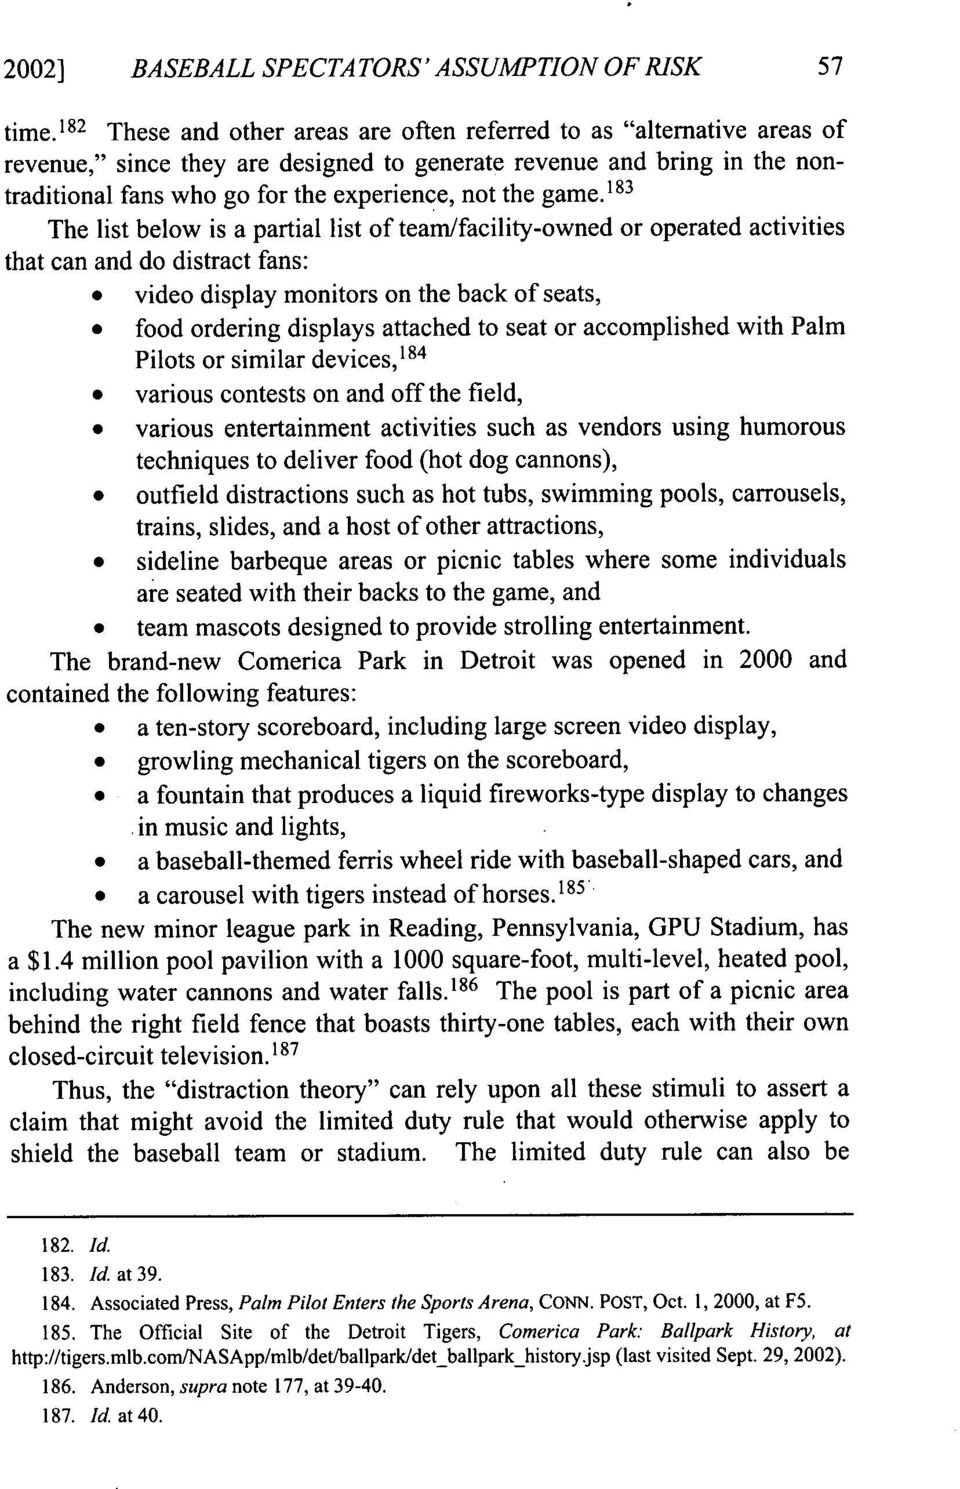 game. 183 The list below is a partial list of team/facility-owned or operated activities that can and do distract fans: * video display monitors on the back of seats, * food ordering displays